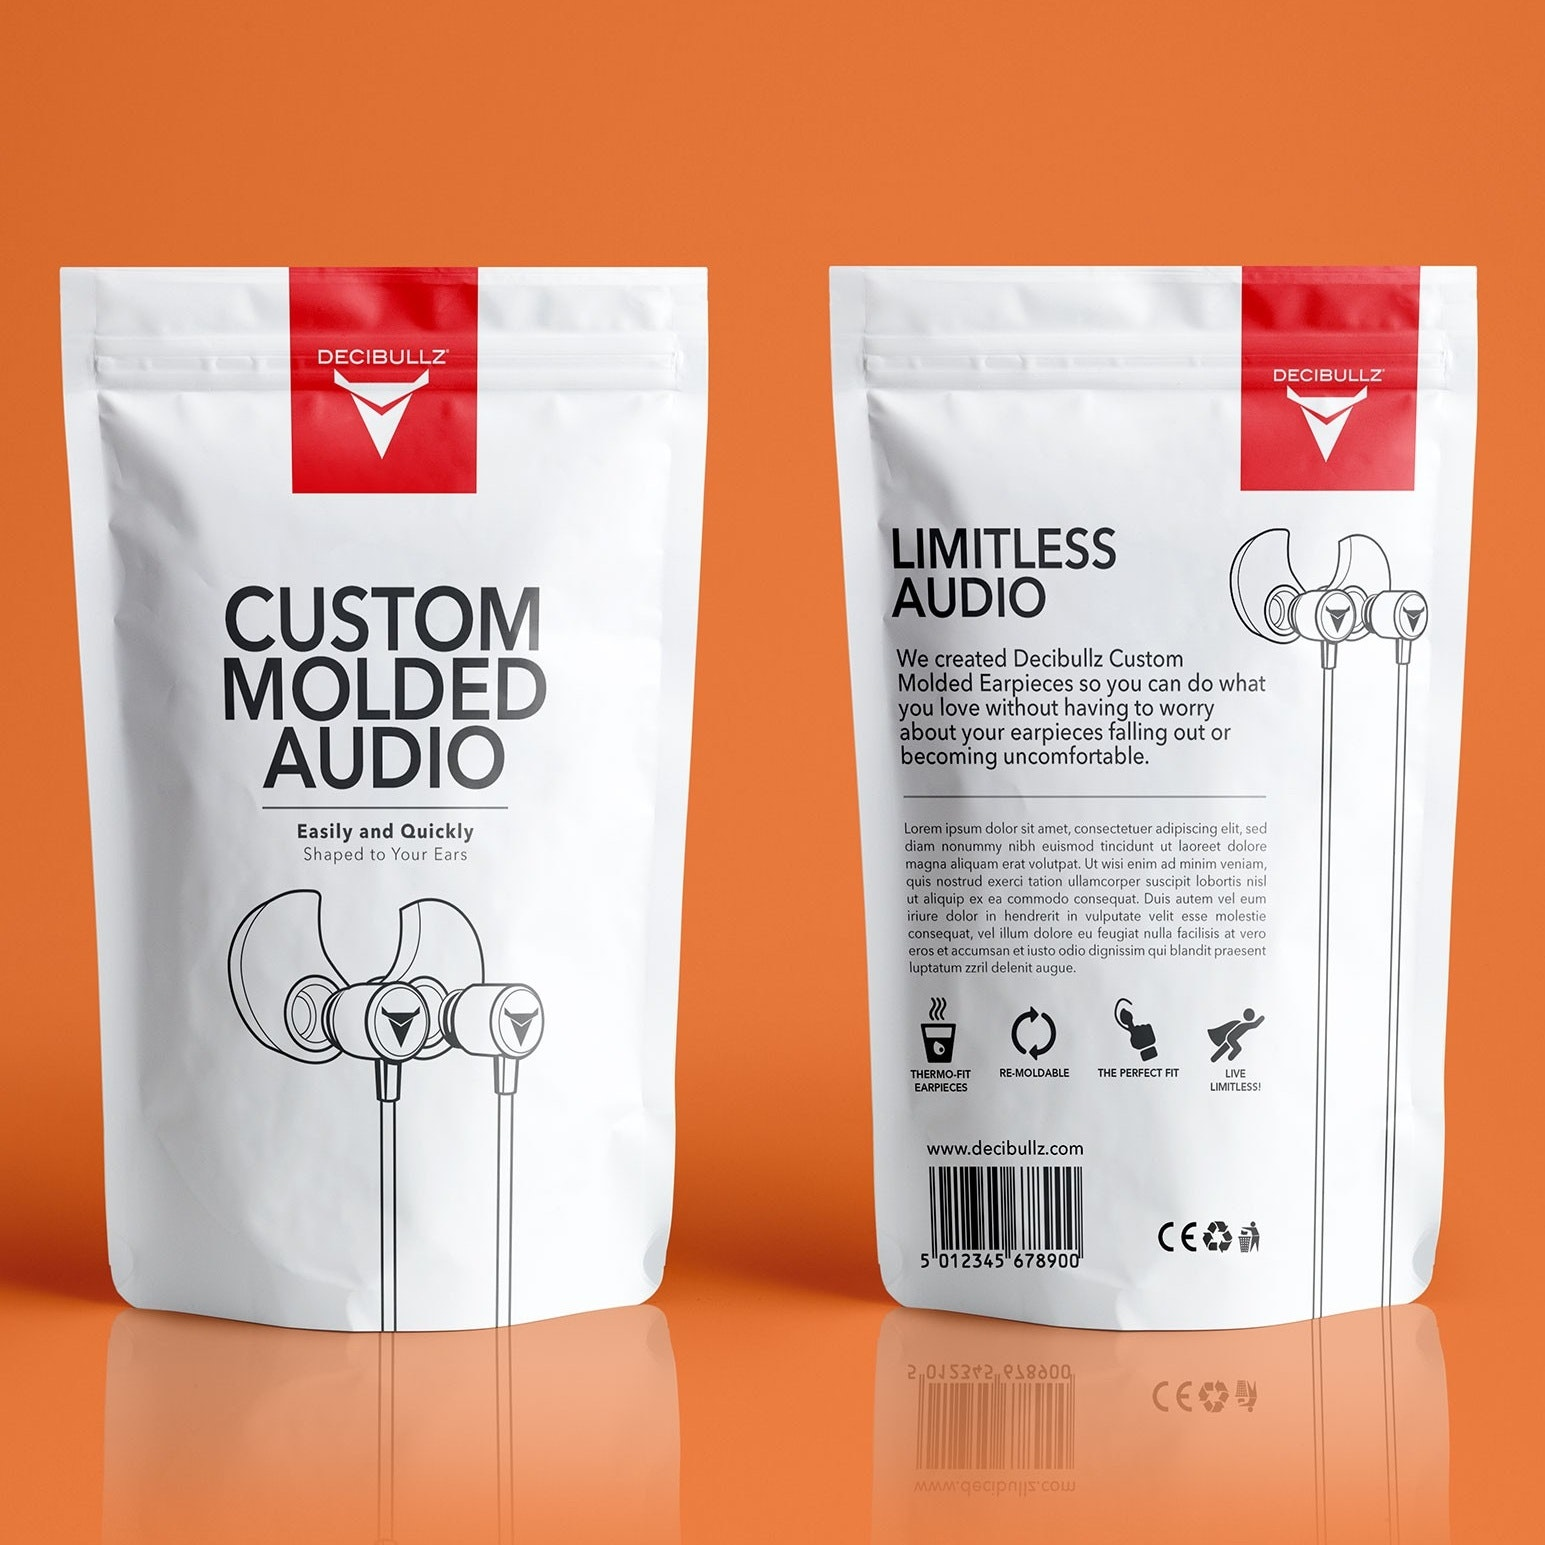 Custom molded audio headphones packaging